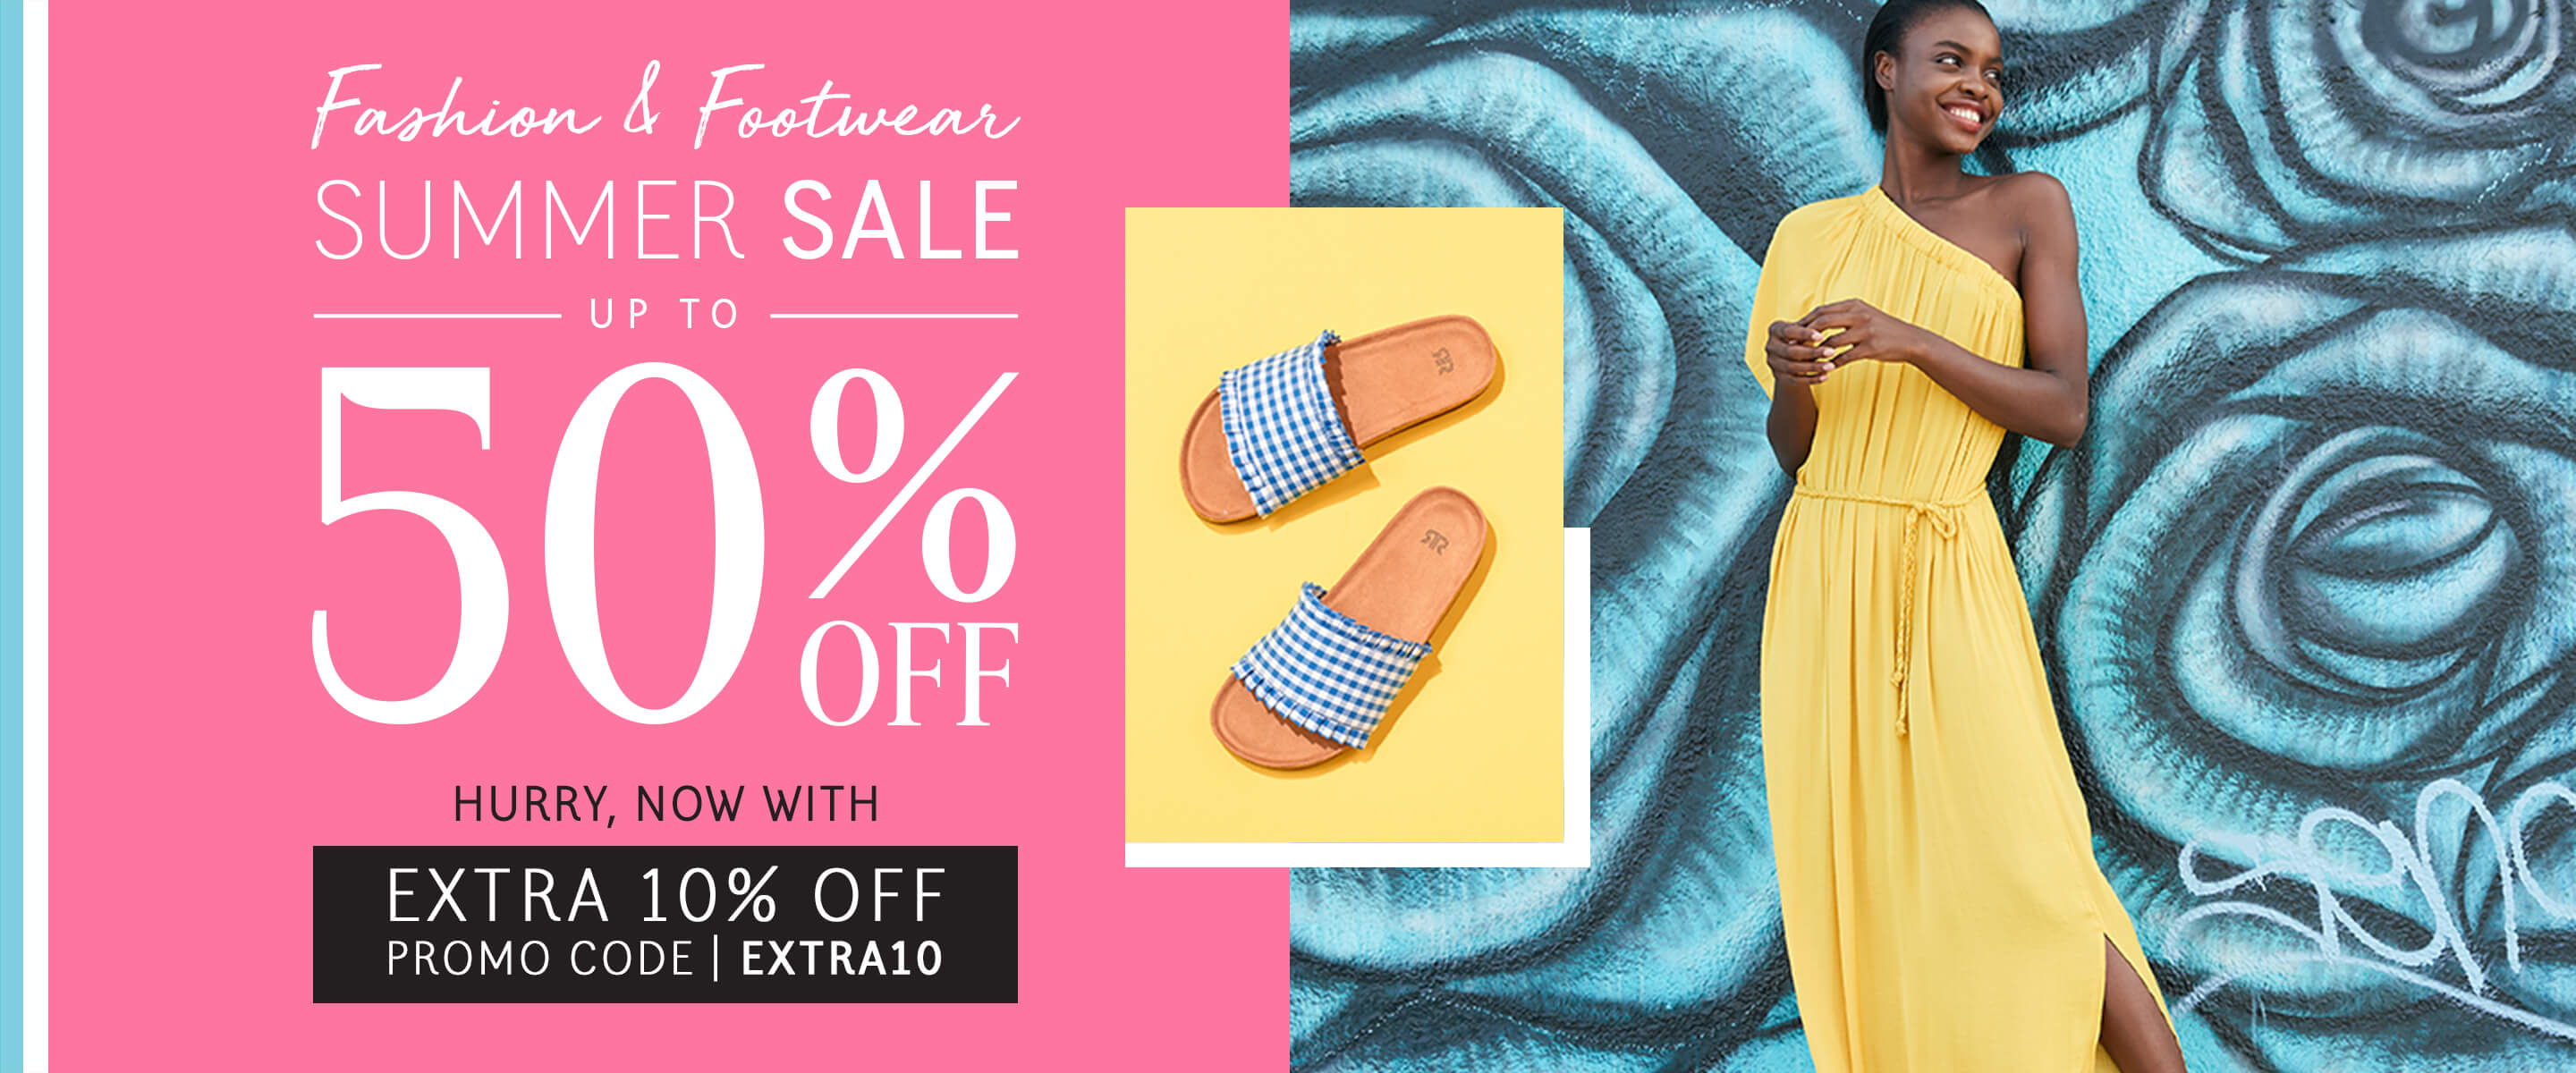 Summer Sale - Up To 50% Off. Hurry - Now With Extra 10% Off